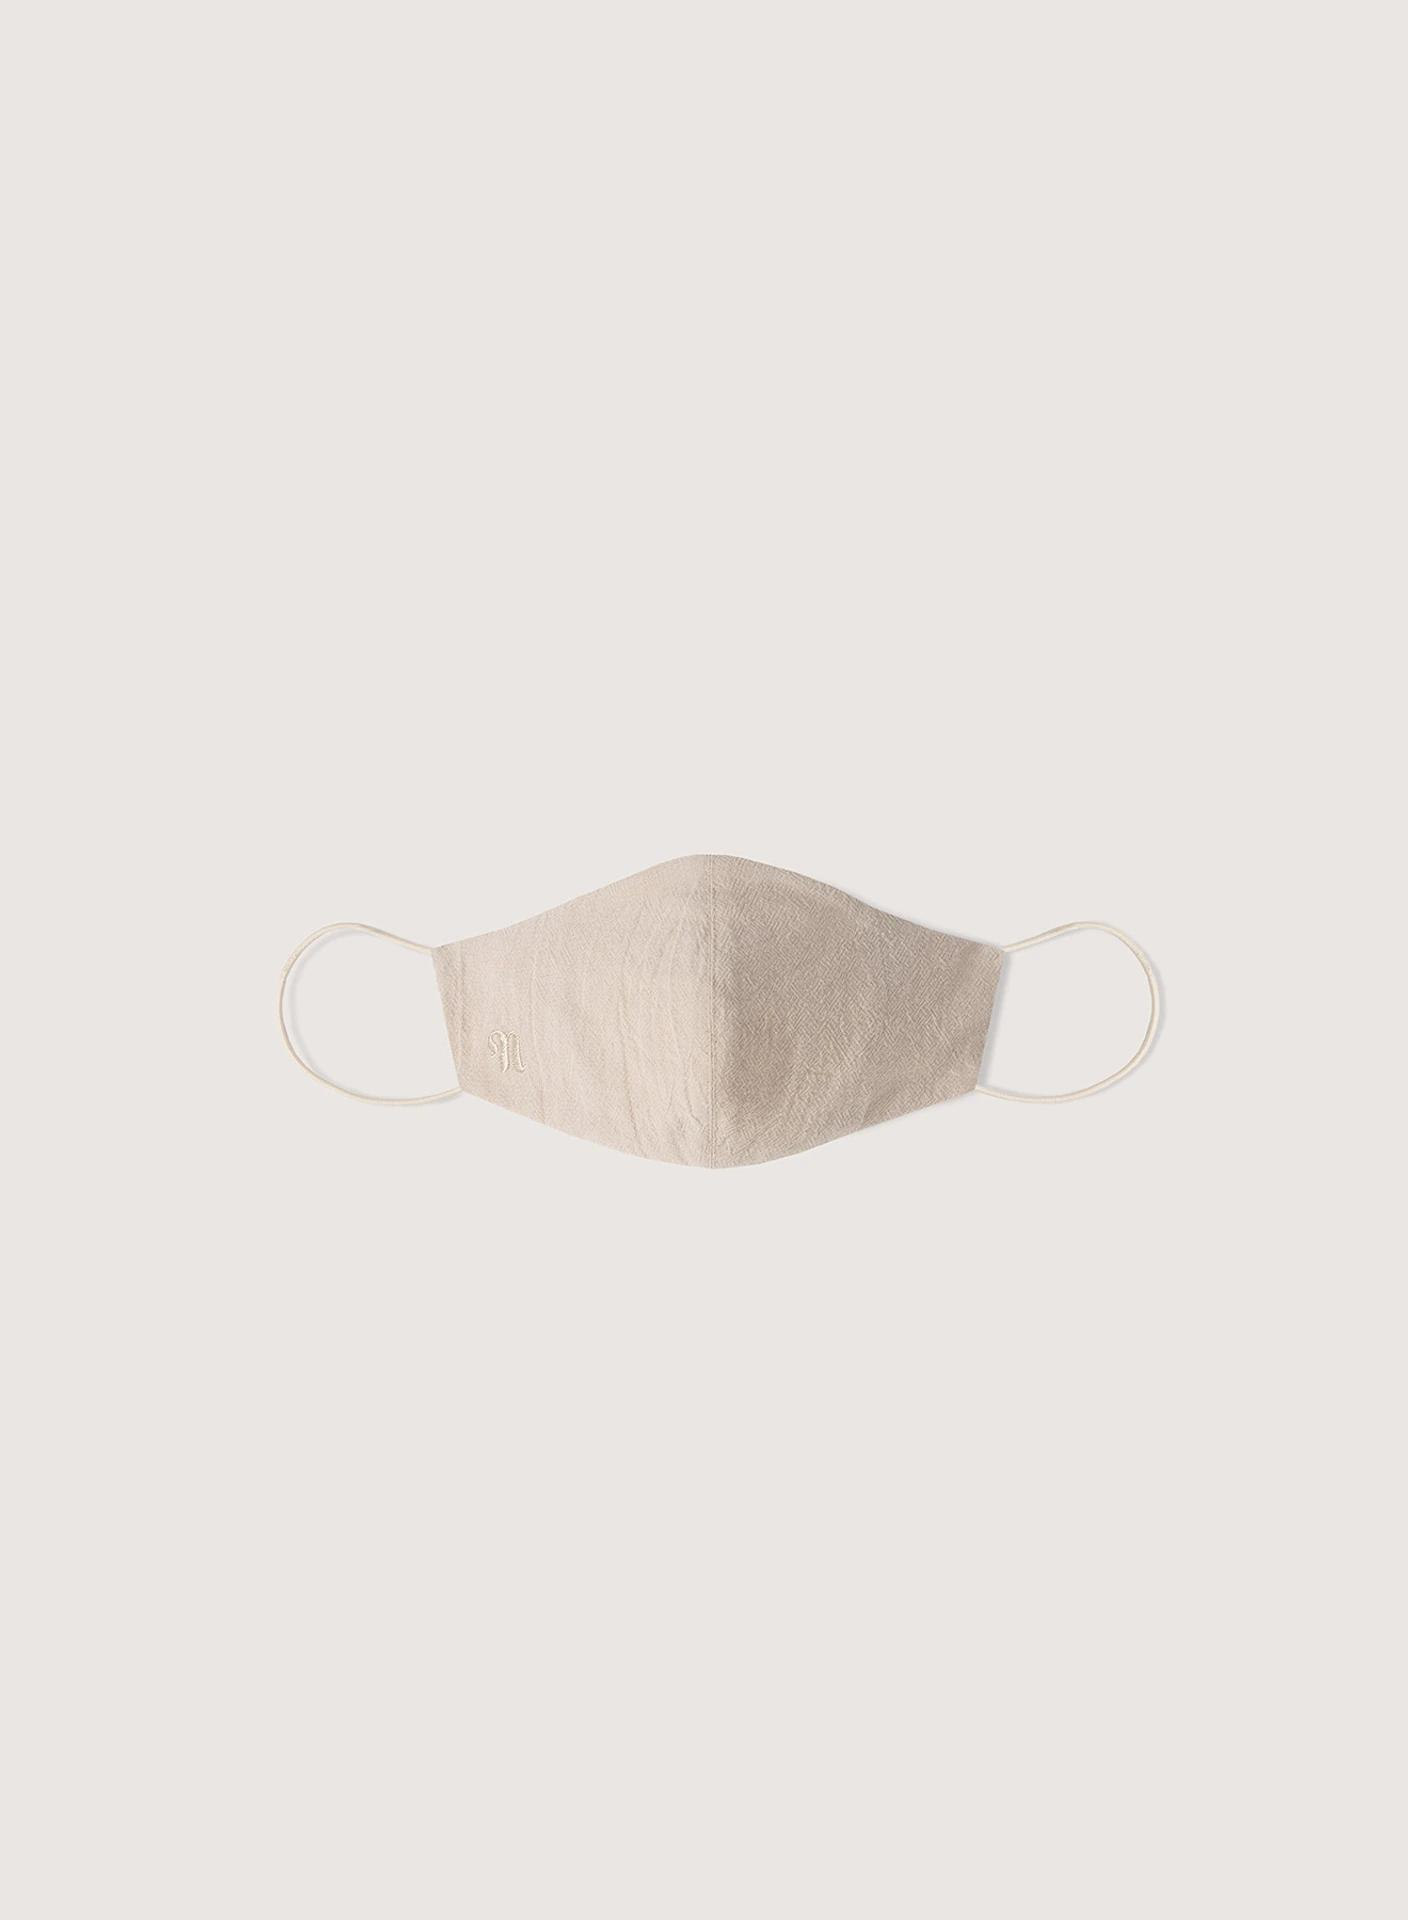 UNY - Canvas face covering - Beige